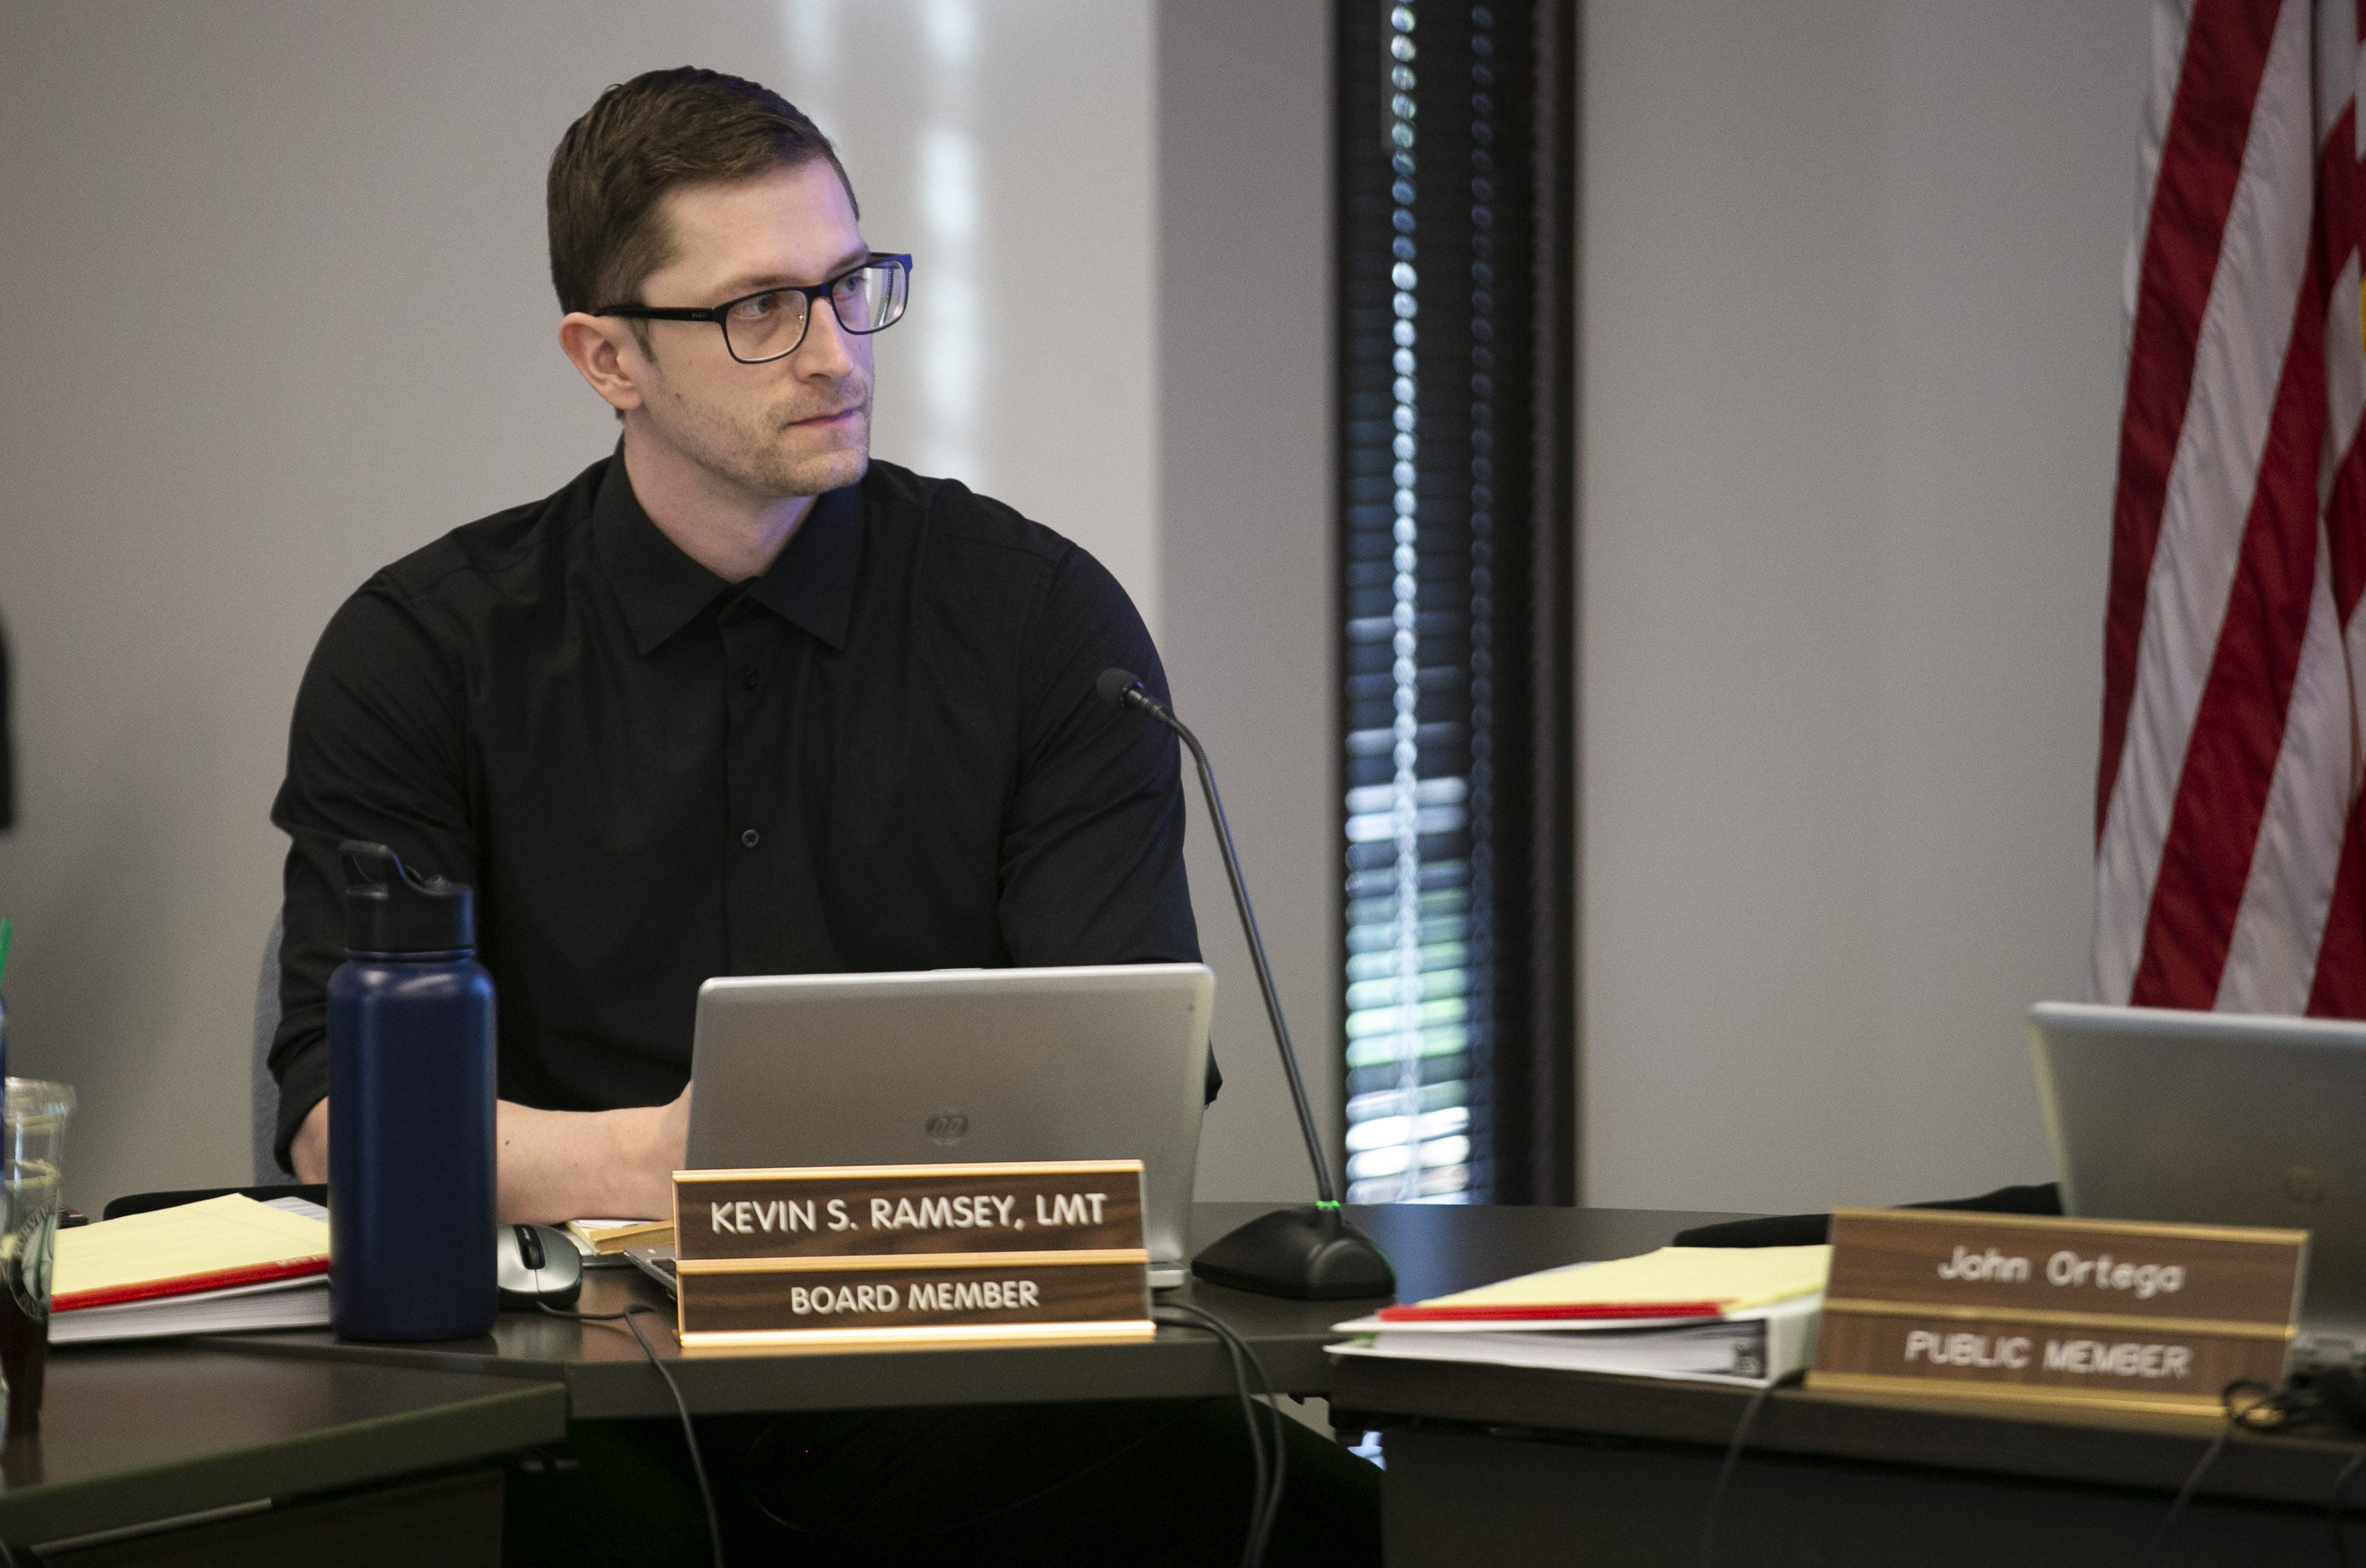 Kevin Ramsey, a board member of the Arizona State Board of Massage Therapy, resigned in June 2021 after being questioned by The Arizona Republic about his votes related to Massage Envy therapists.